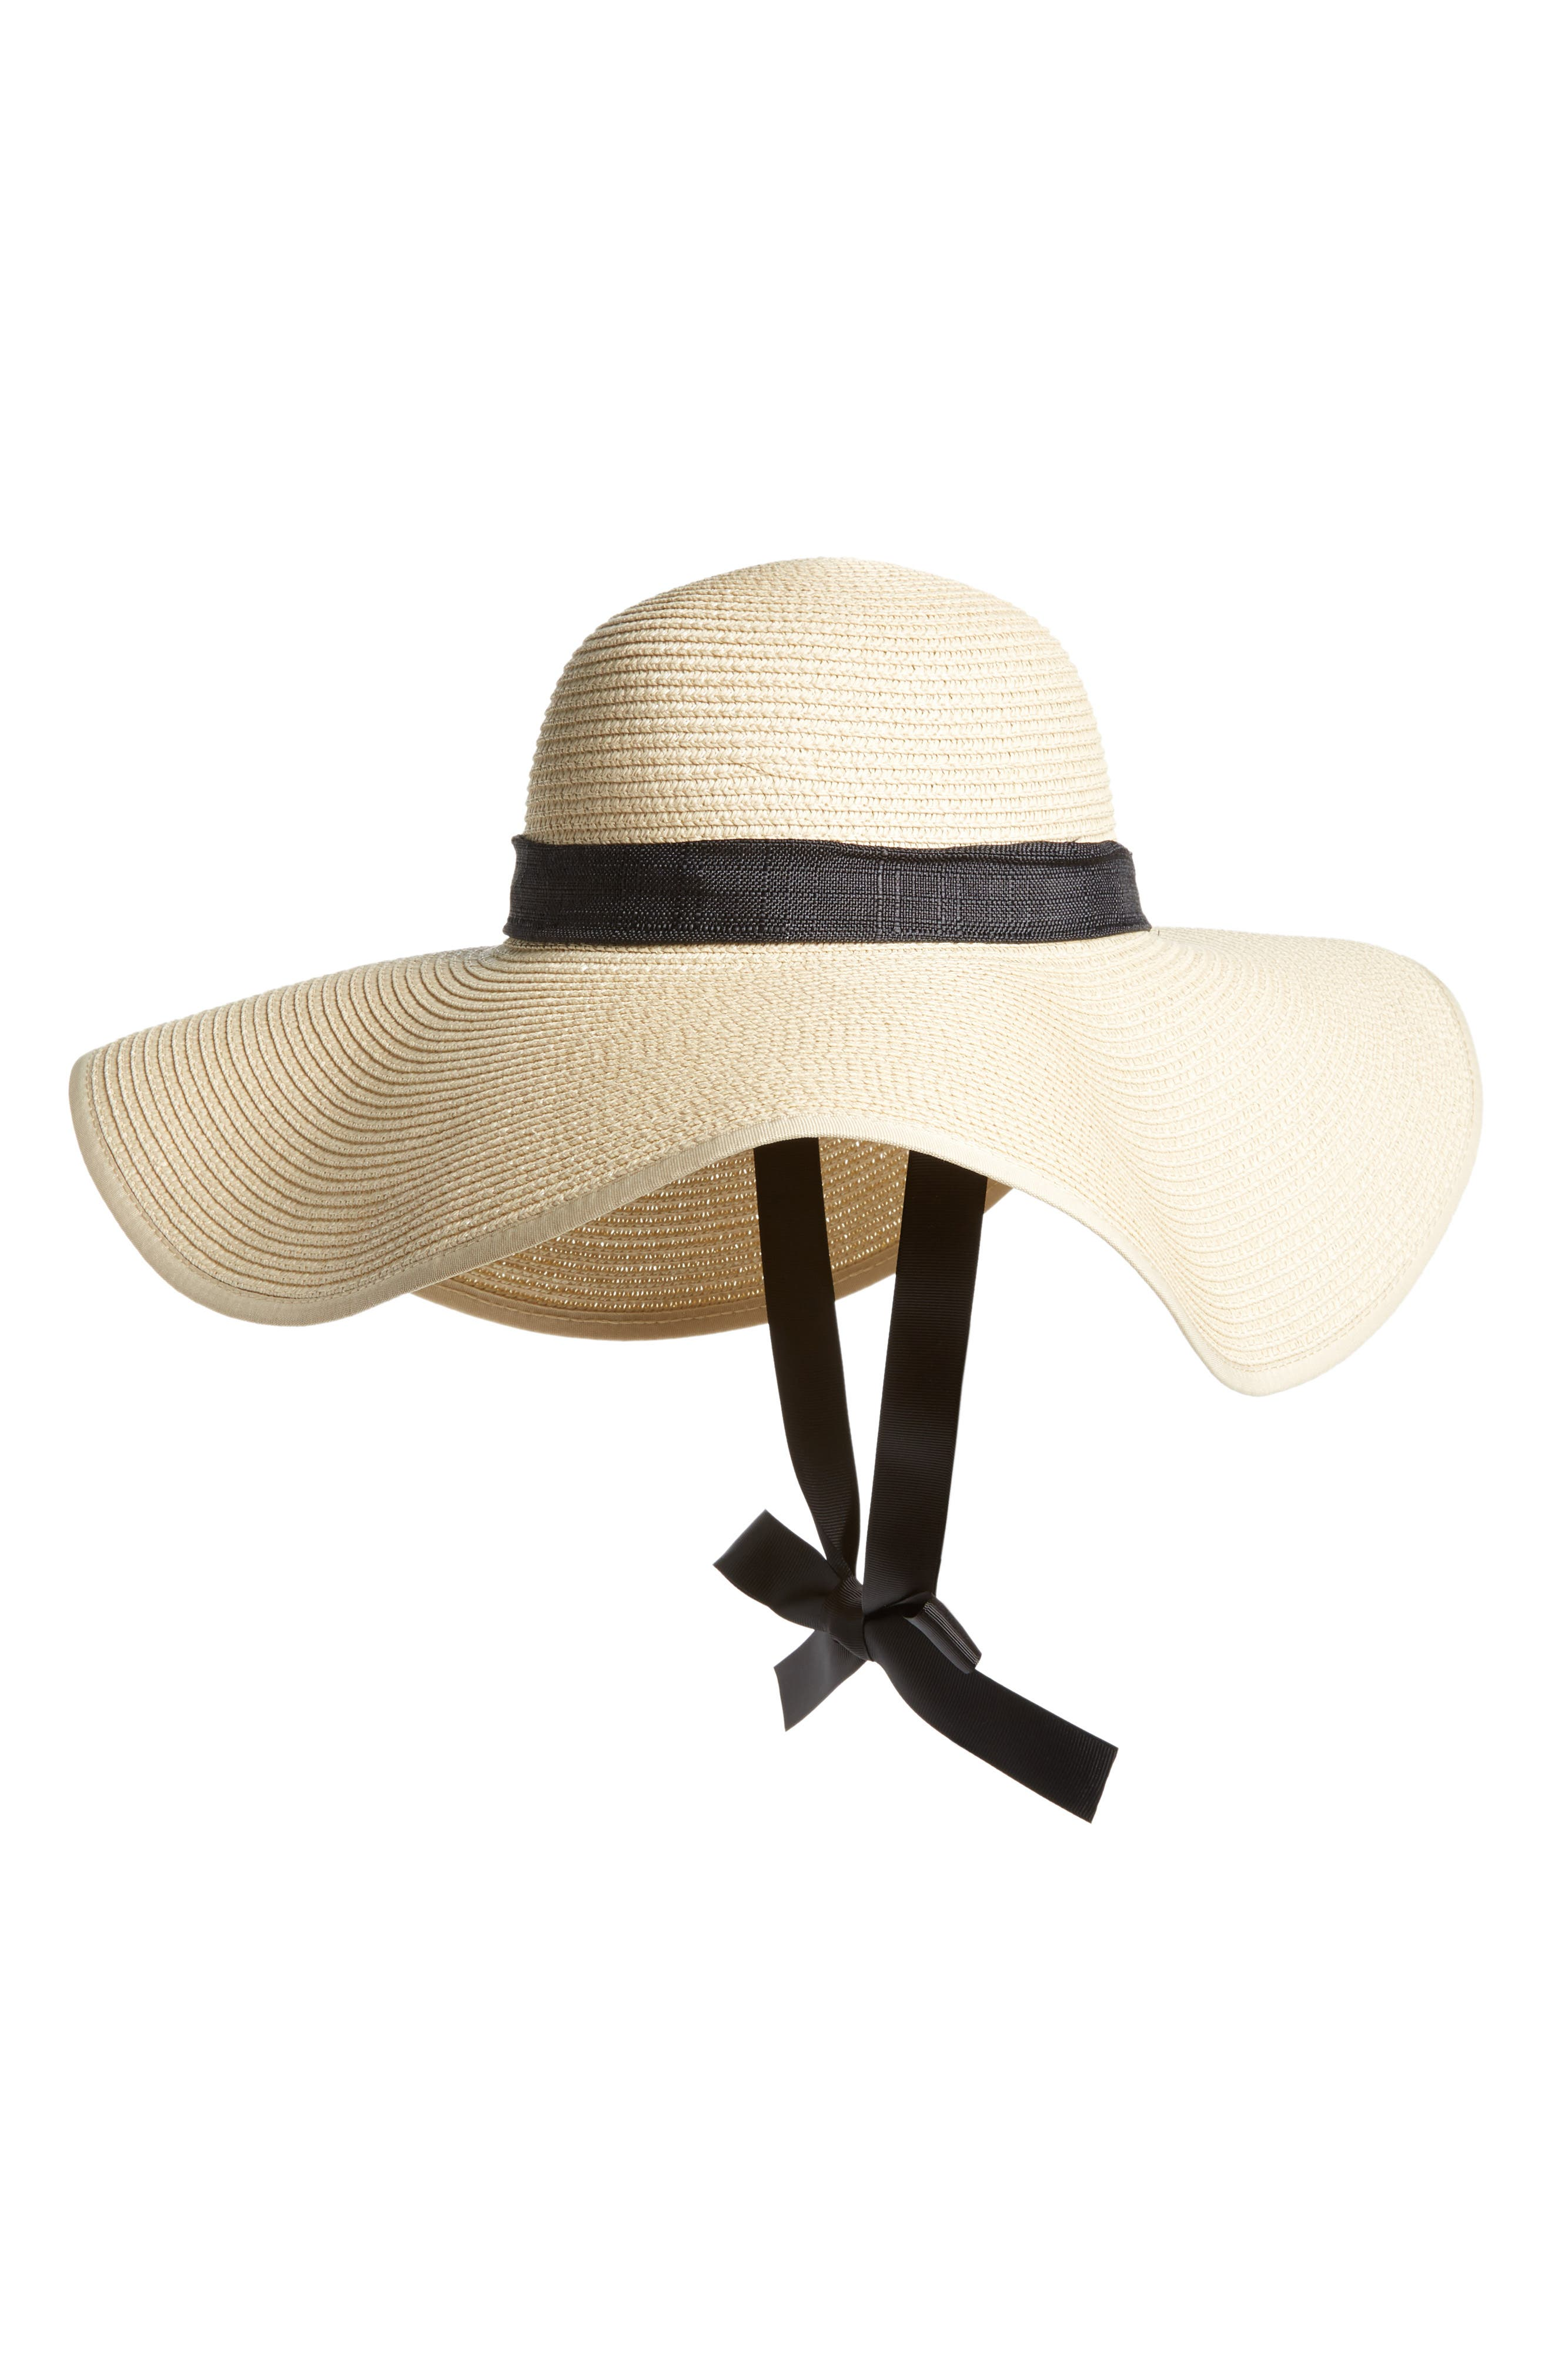 Tie Neck Ribbon Floppy Straw Hat,                             Main thumbnail 1, color,                             001